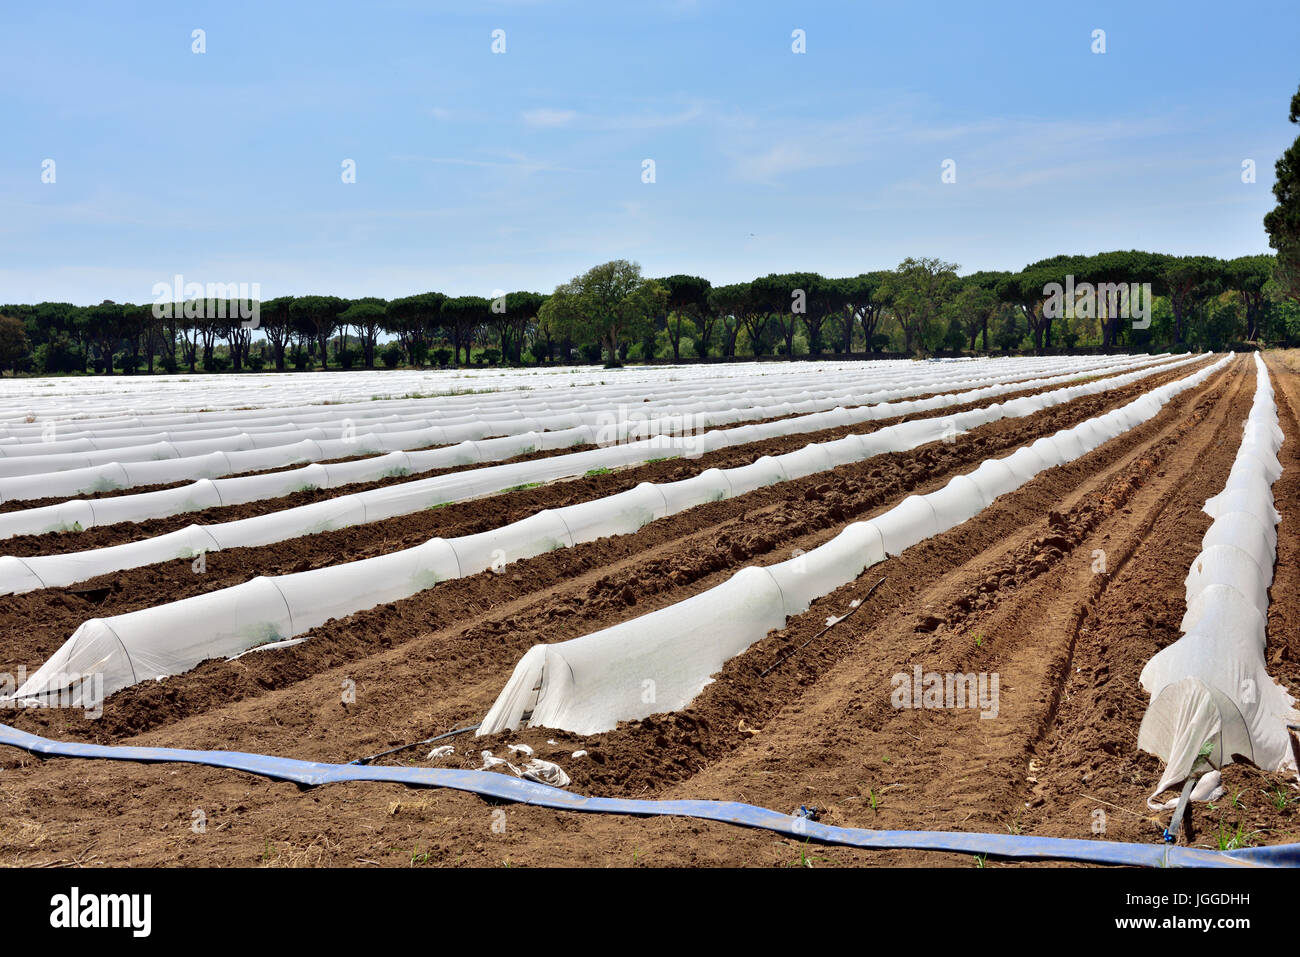 Commercial agricultural field with horticultural polythene fleece film cloches to conserve water and protect new - Stock Image